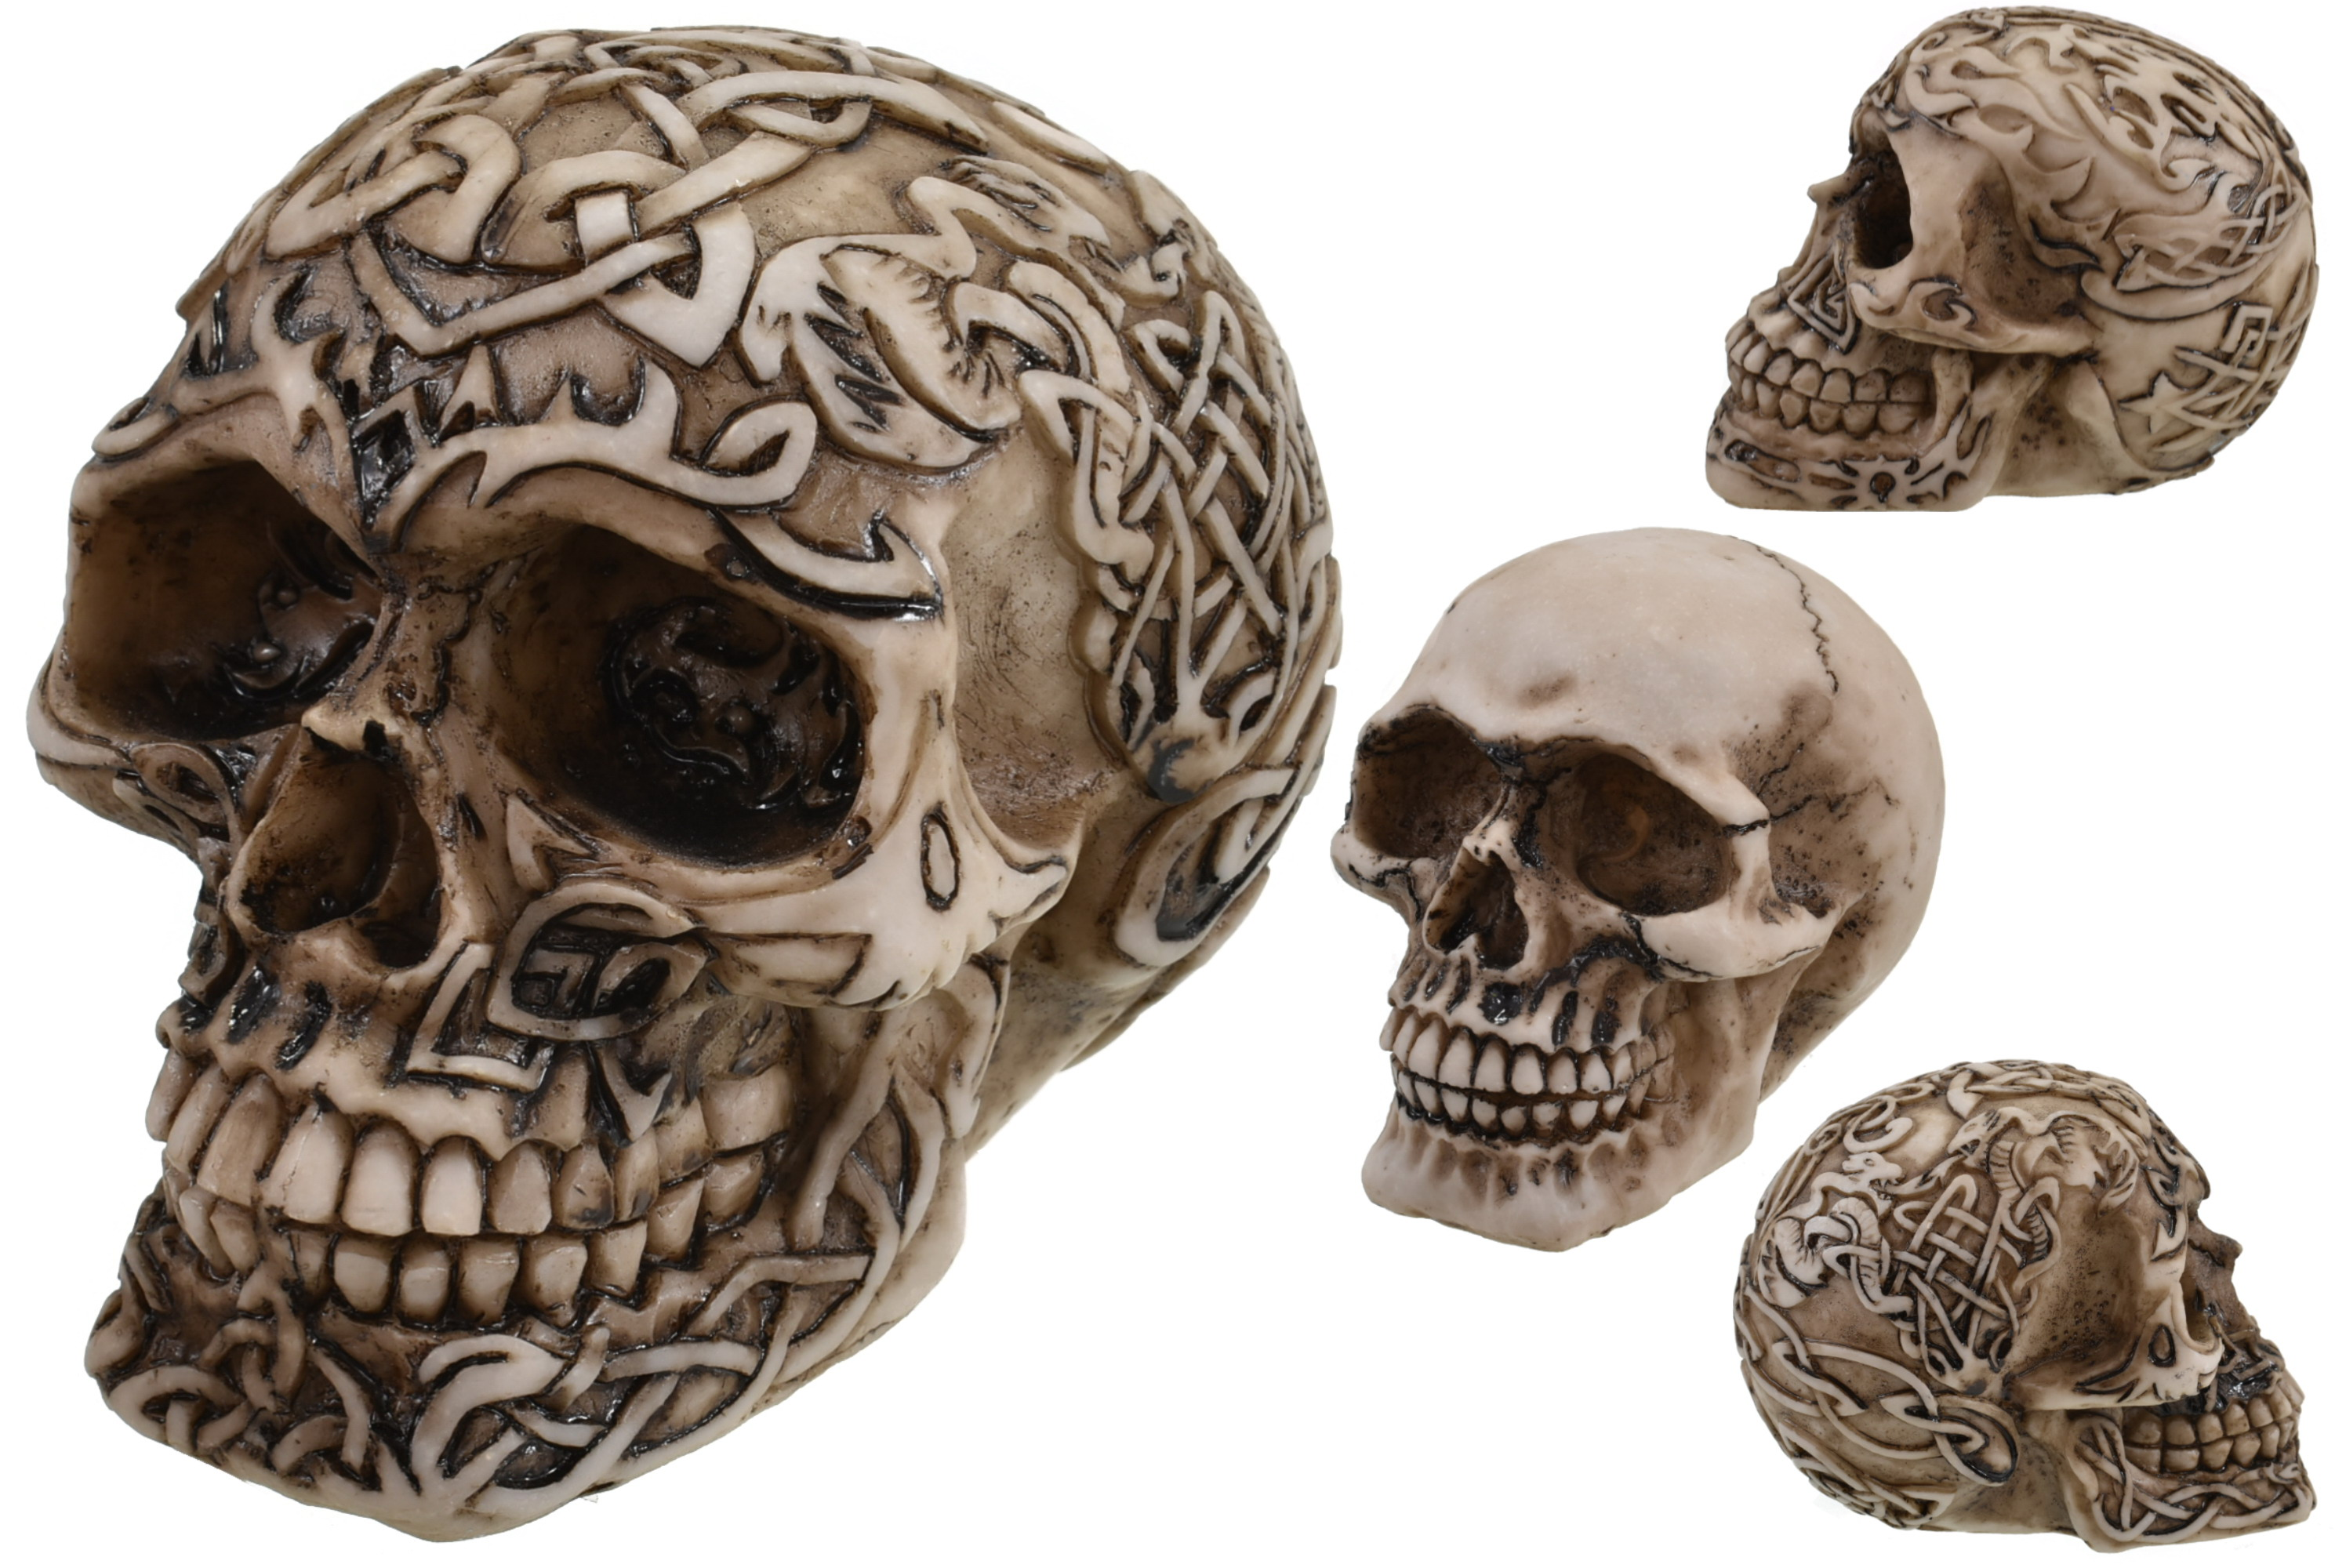 10cm Resin Skull - 4 Assorted